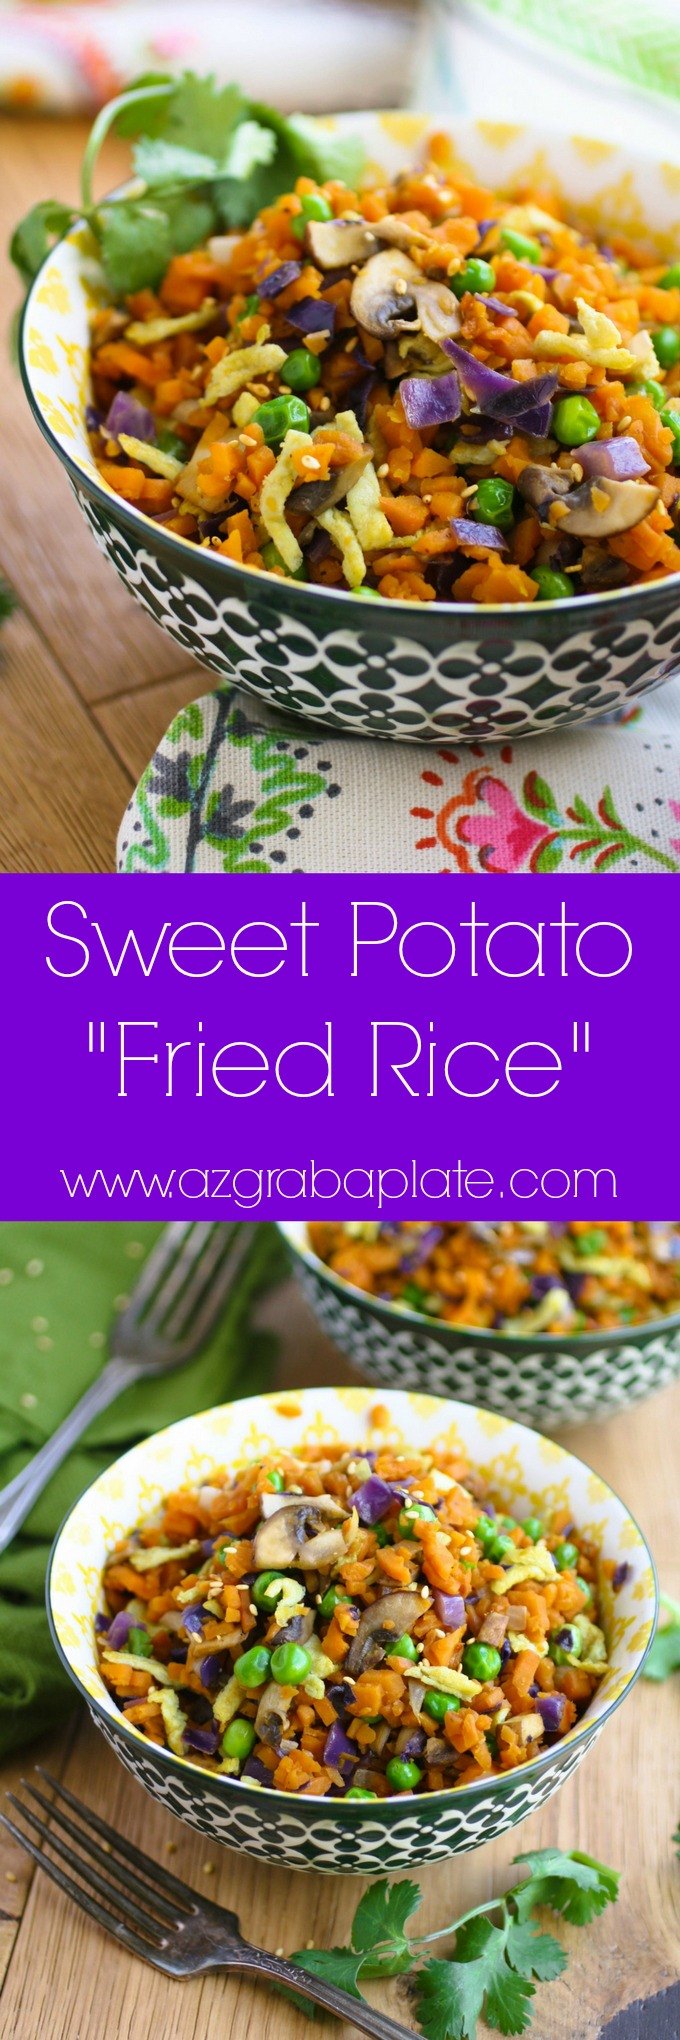 "Sweet Potato ""Fried Rice"" is a colorful and healthy dish your family will love! This is a vegetarian dish perfect for Meatless Monday, or any day of the week!"